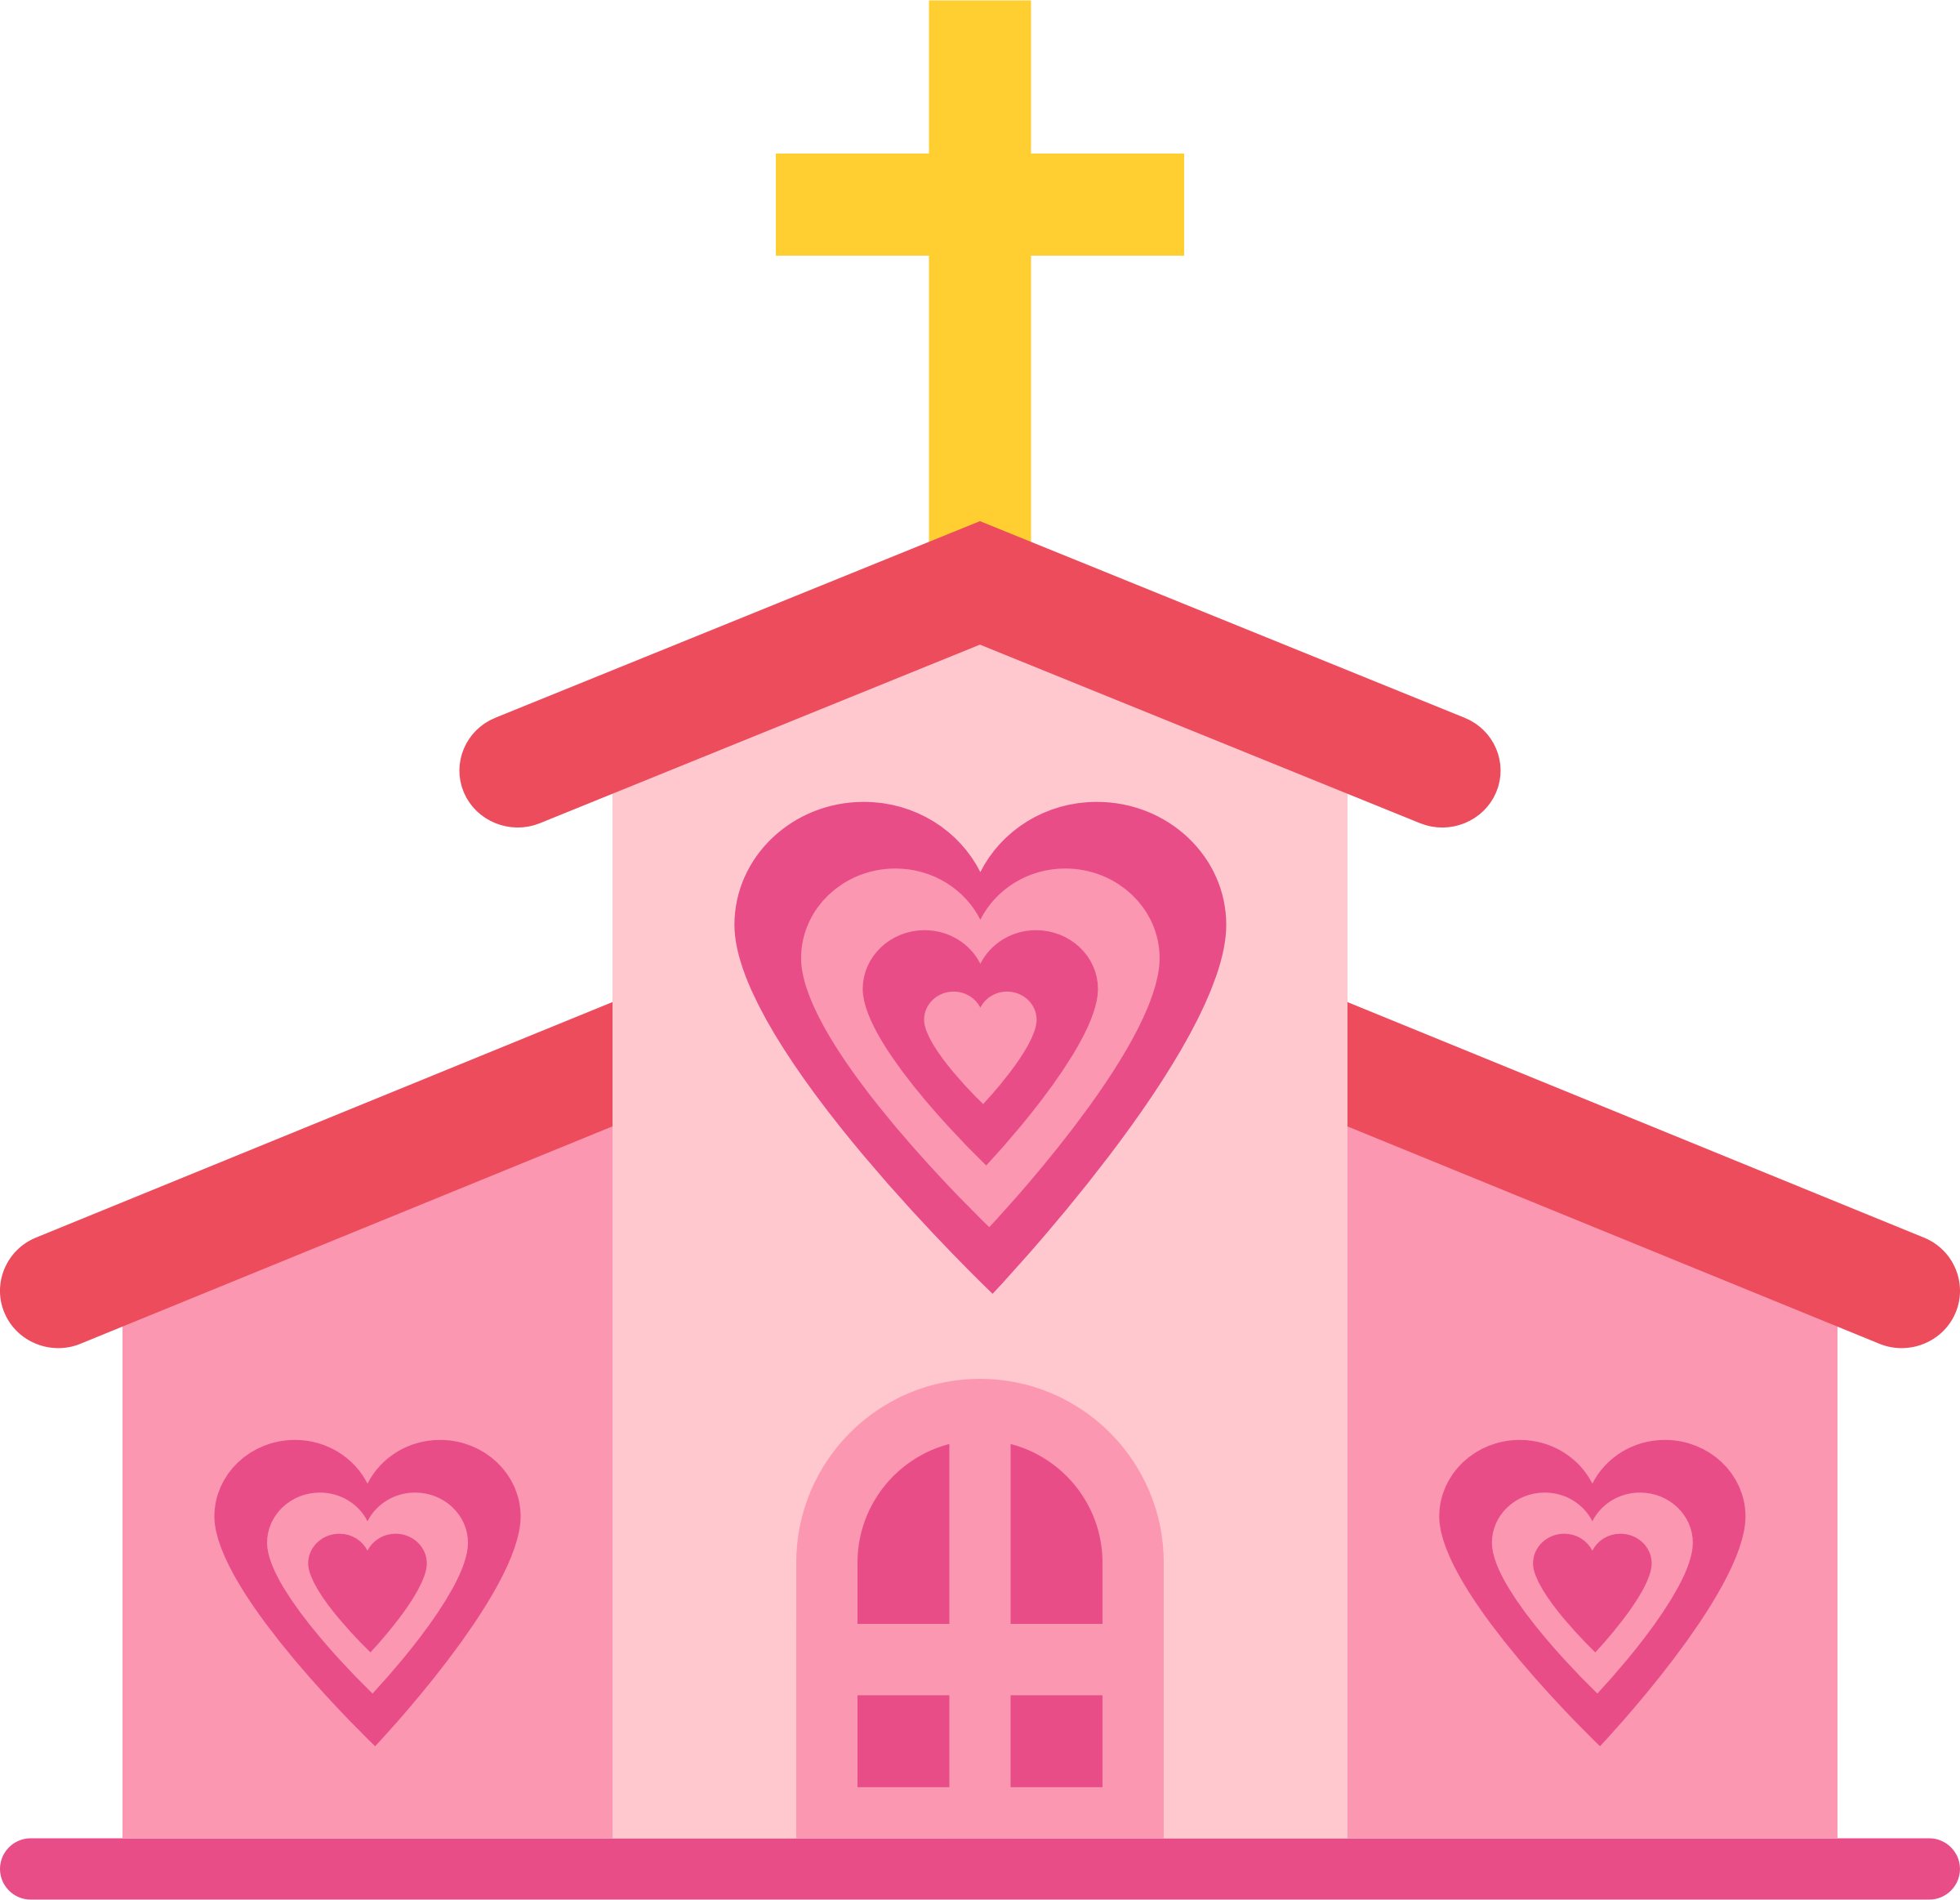 Heart house clipart clip art freeuse download Clipart - Church of love clip art freeuse download